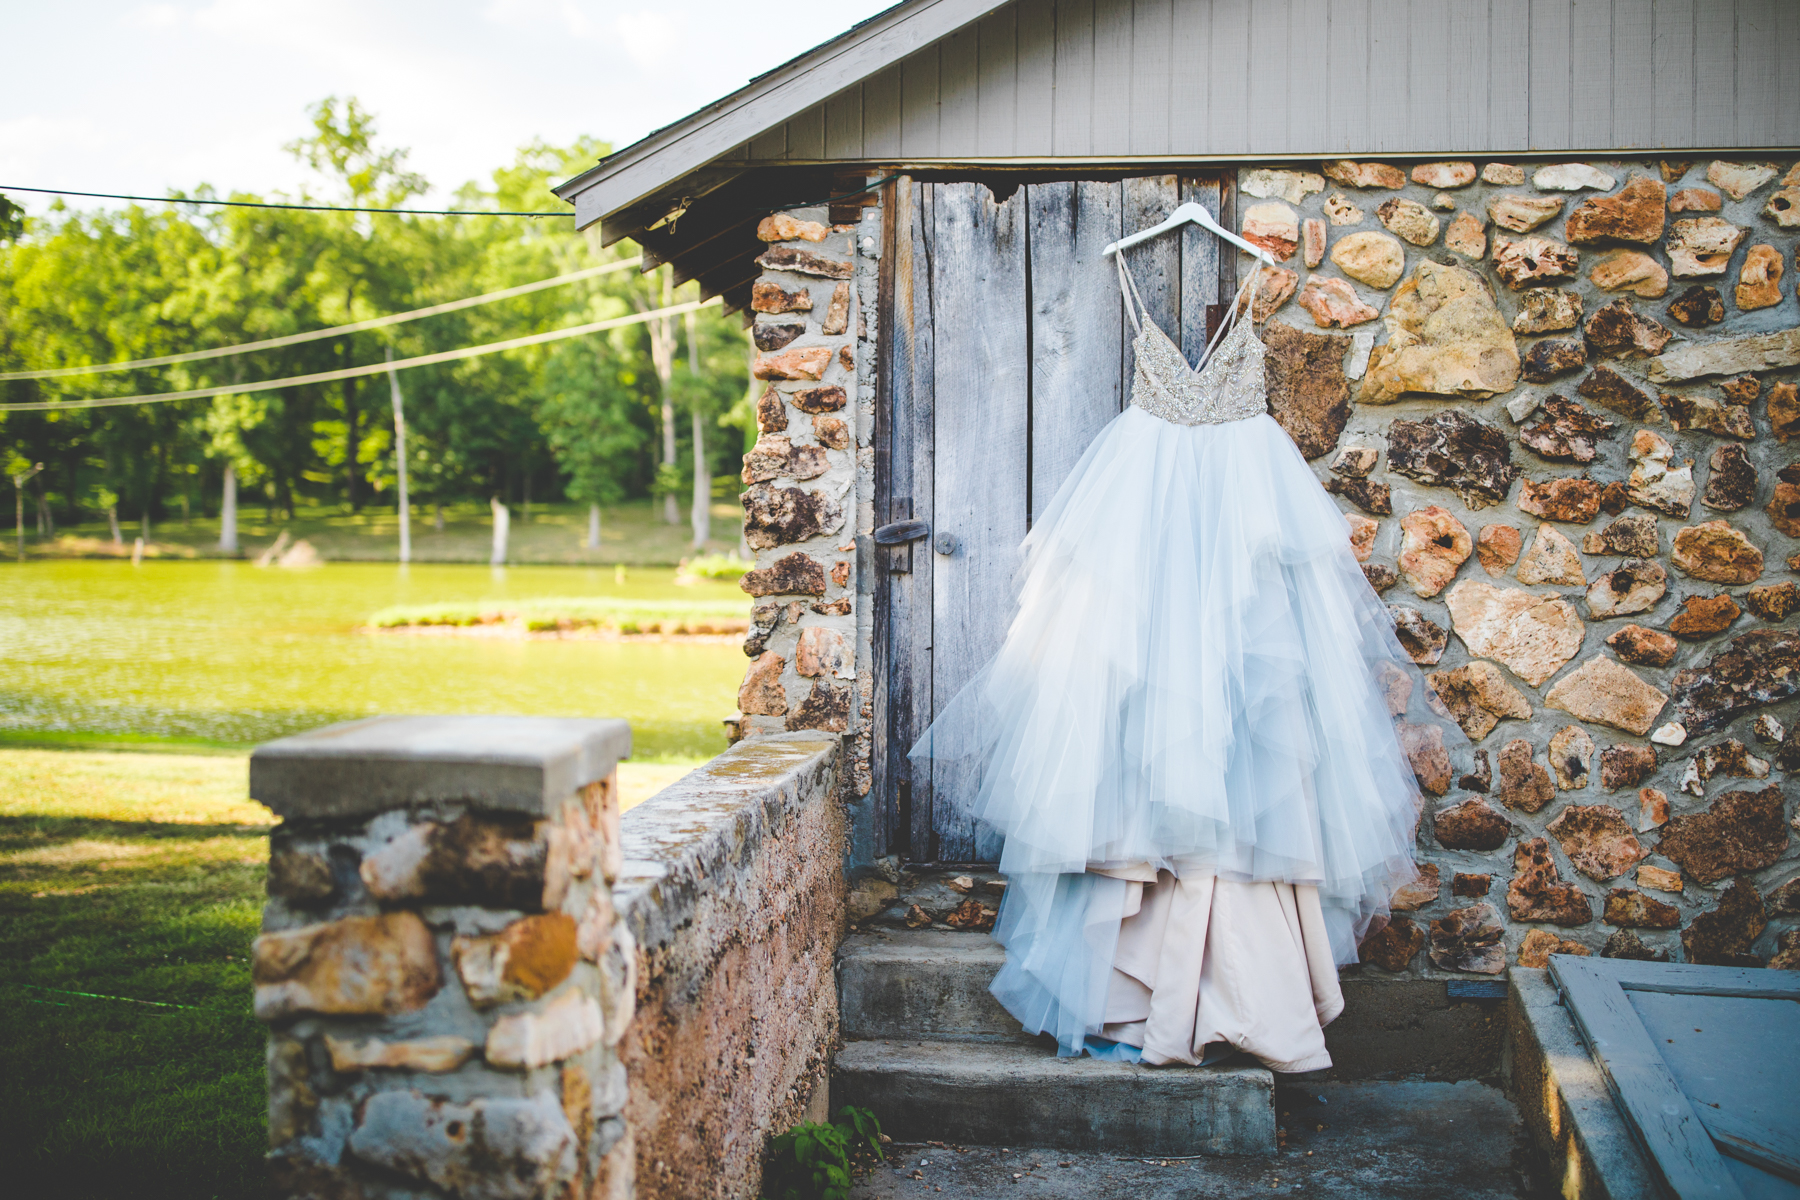 Hailey Paige wedding dress hanging on barn in Southwest Missouri